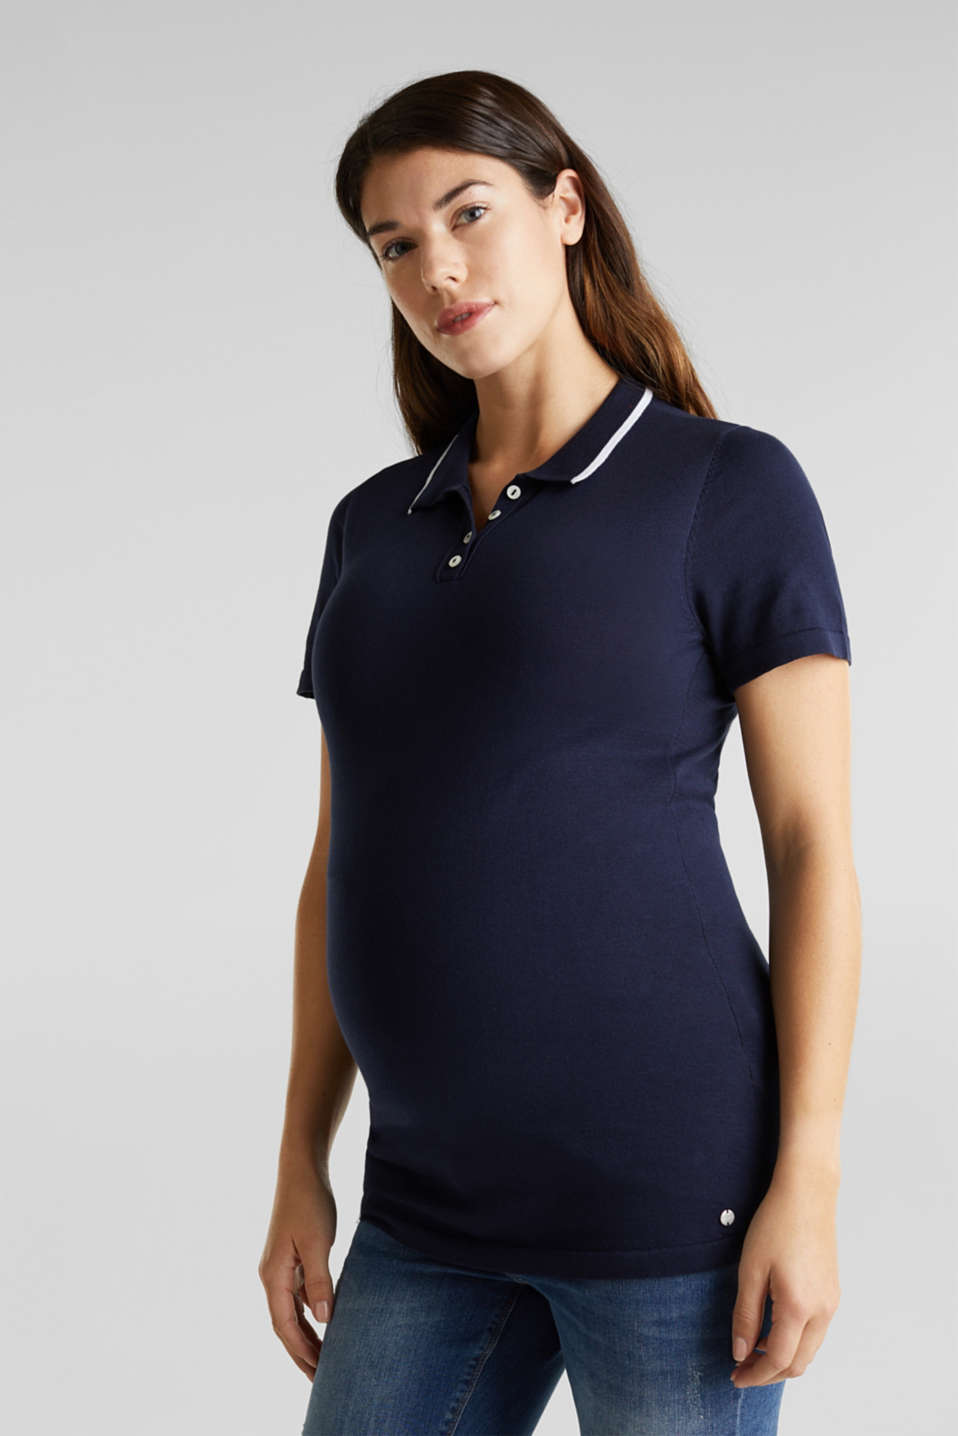 Esprit - Polo shirt jumper in 100% cotton